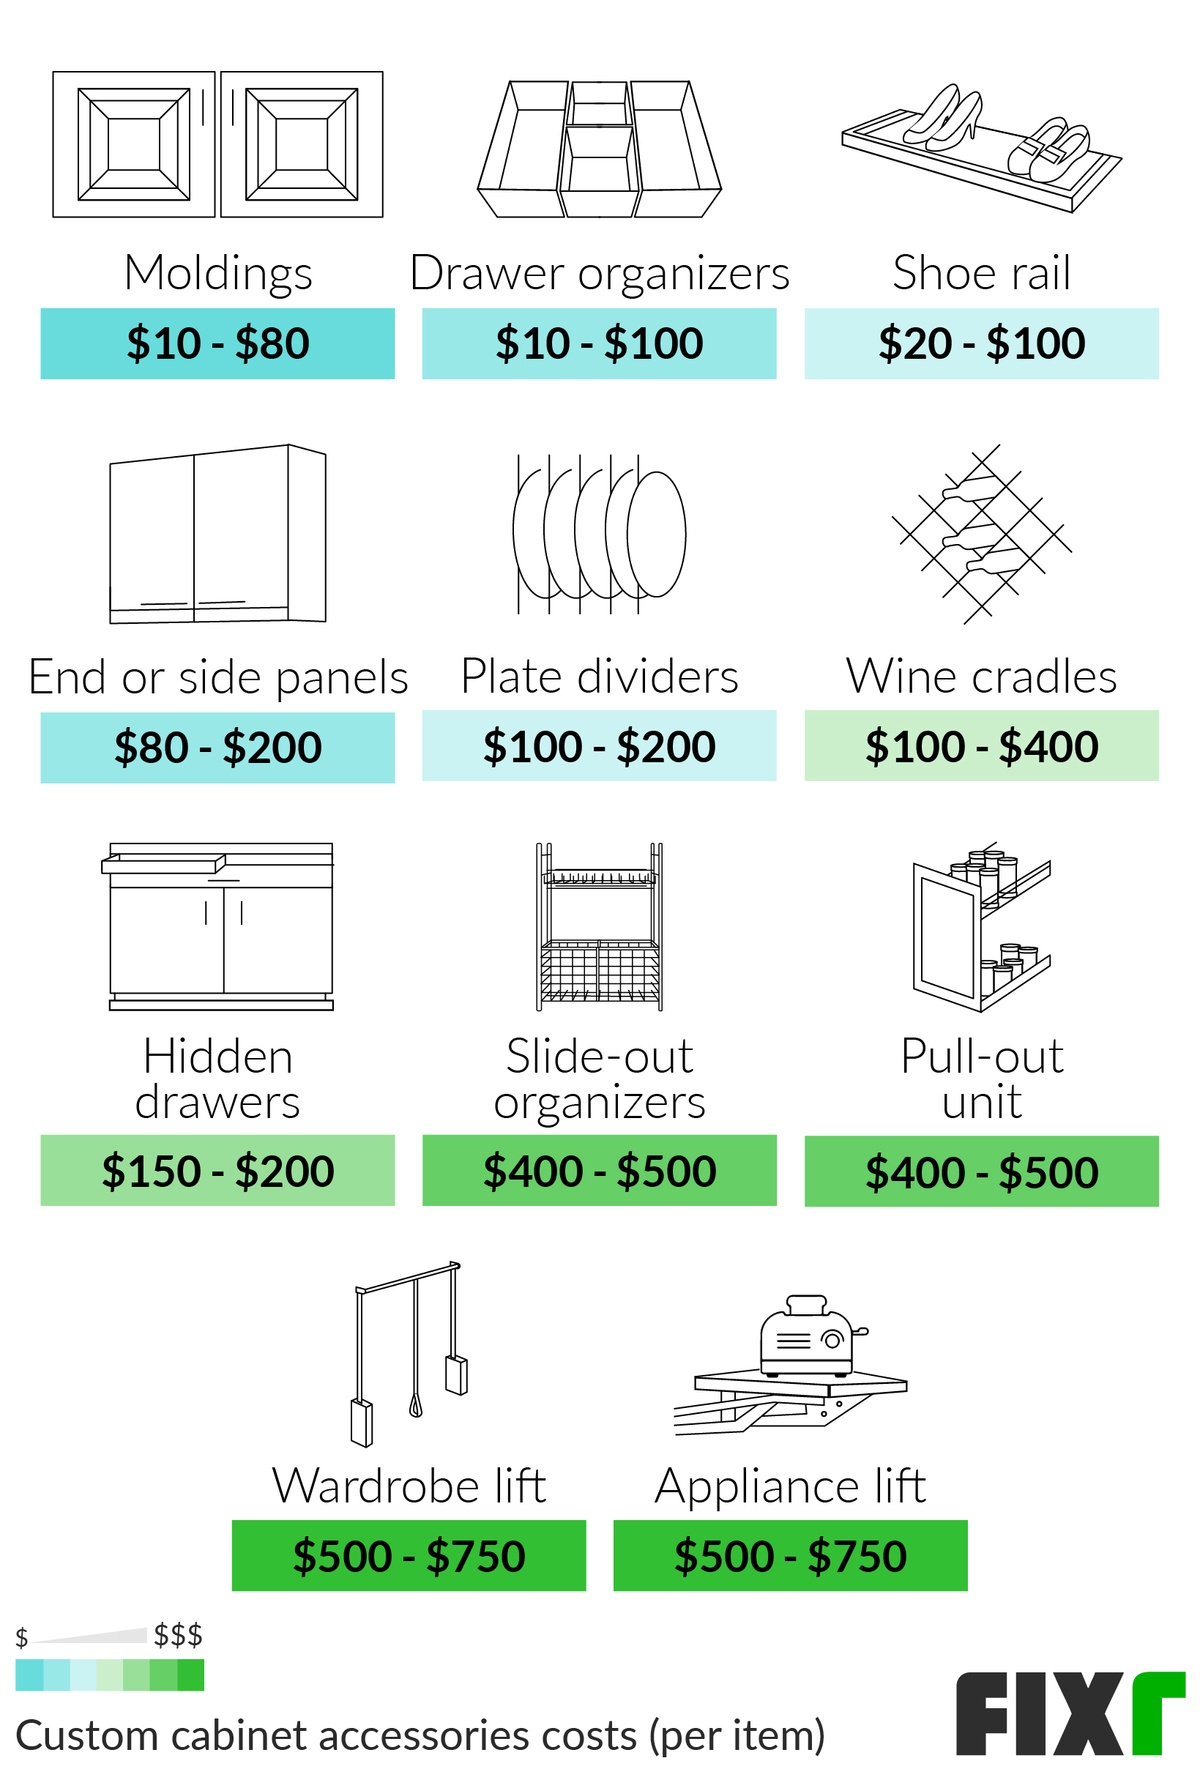 2021 Cost To Install Custom Cabinets Cost Of Custom Cabinets